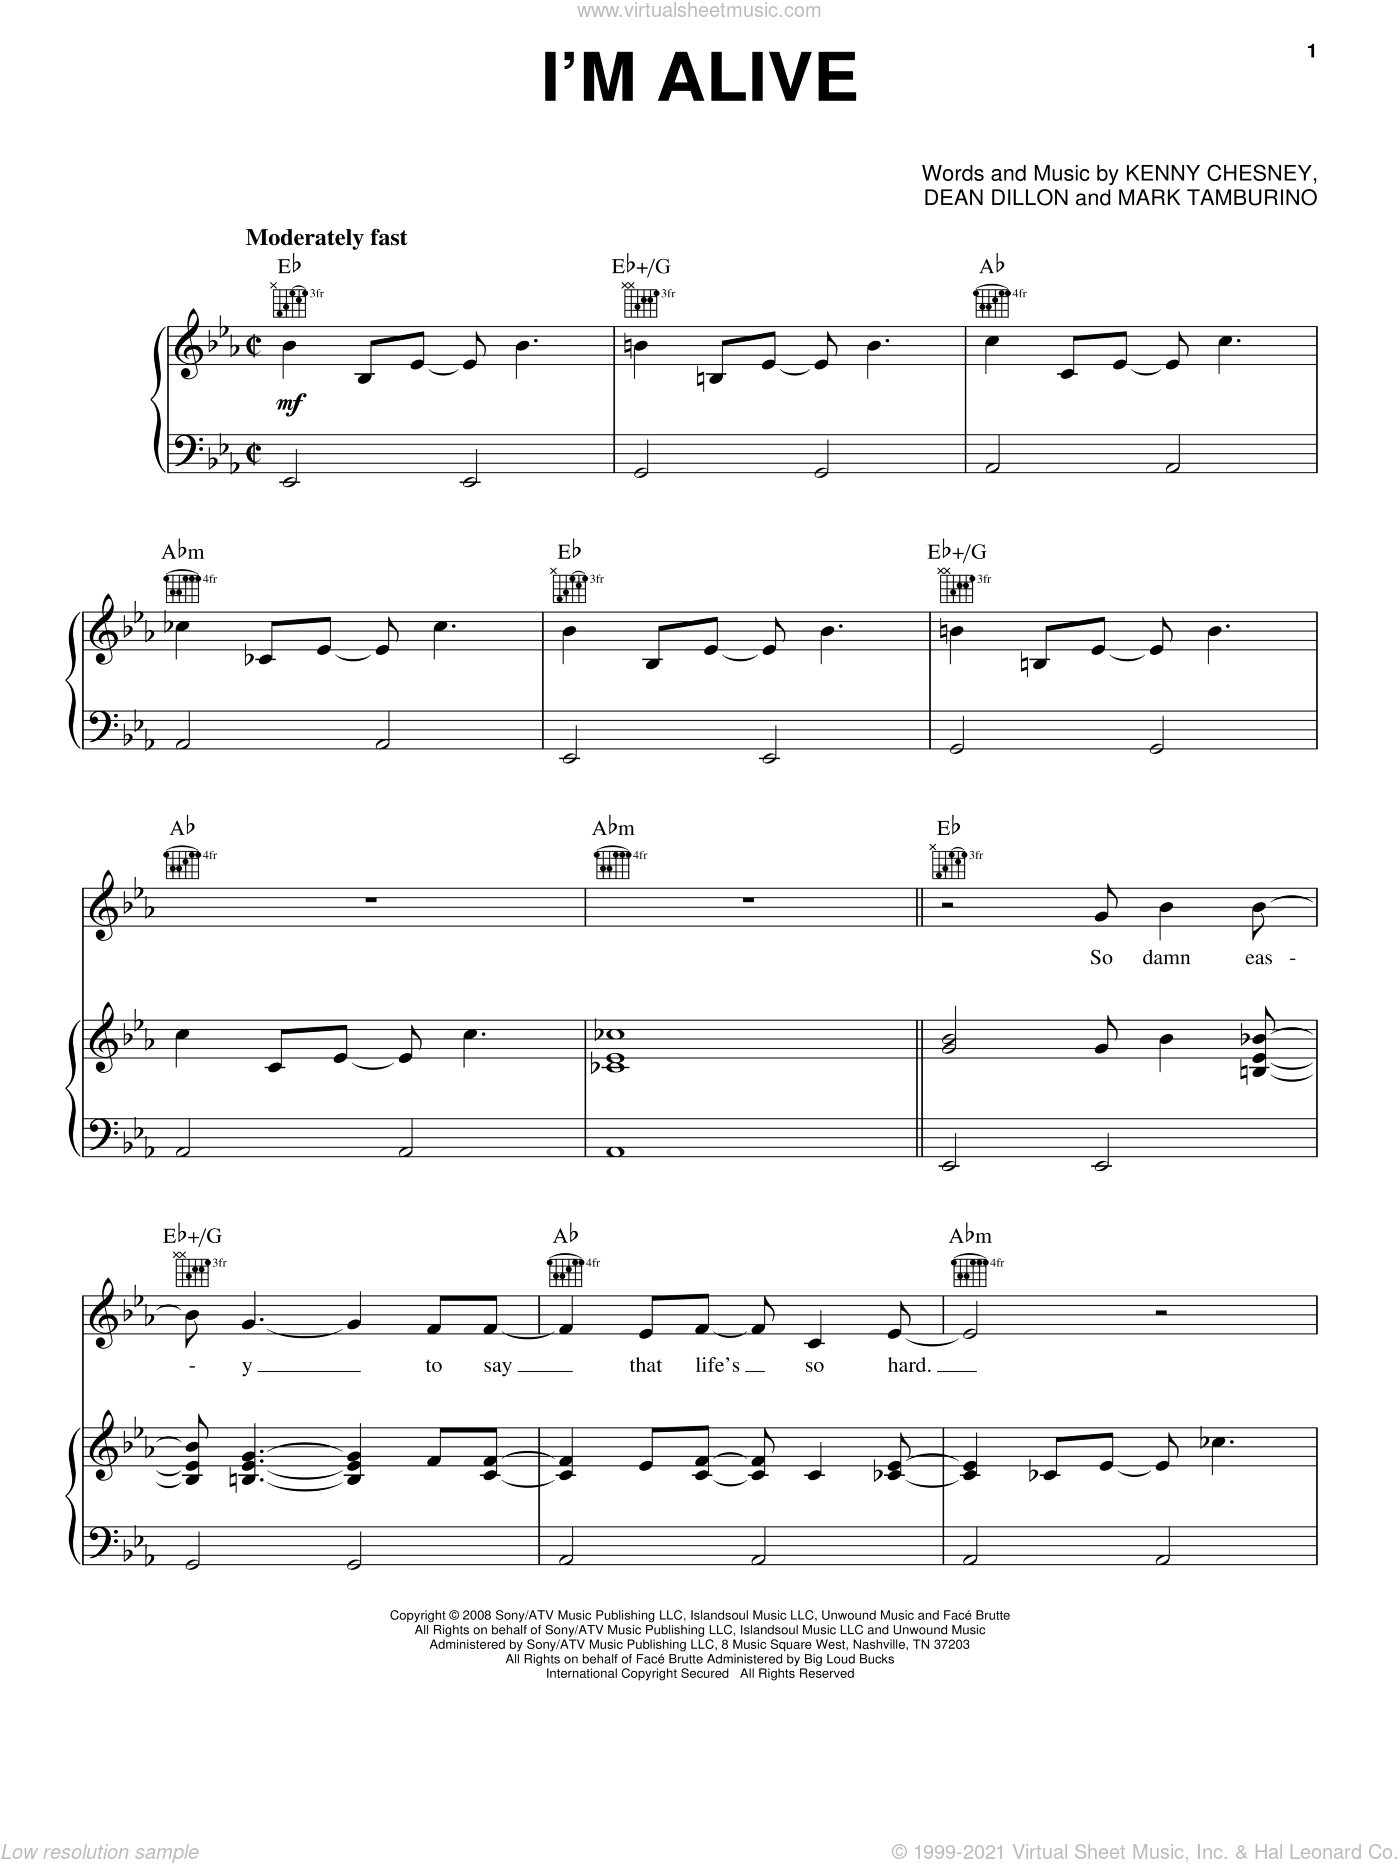 I'm Alive sheet music for voice, piano or guitar by Kenny Chesney with Dave Matthews, Dave Matthews, Dean Dillon and Kenny Chesney, intermediate voice, piano or guitar. Score Image Preview.